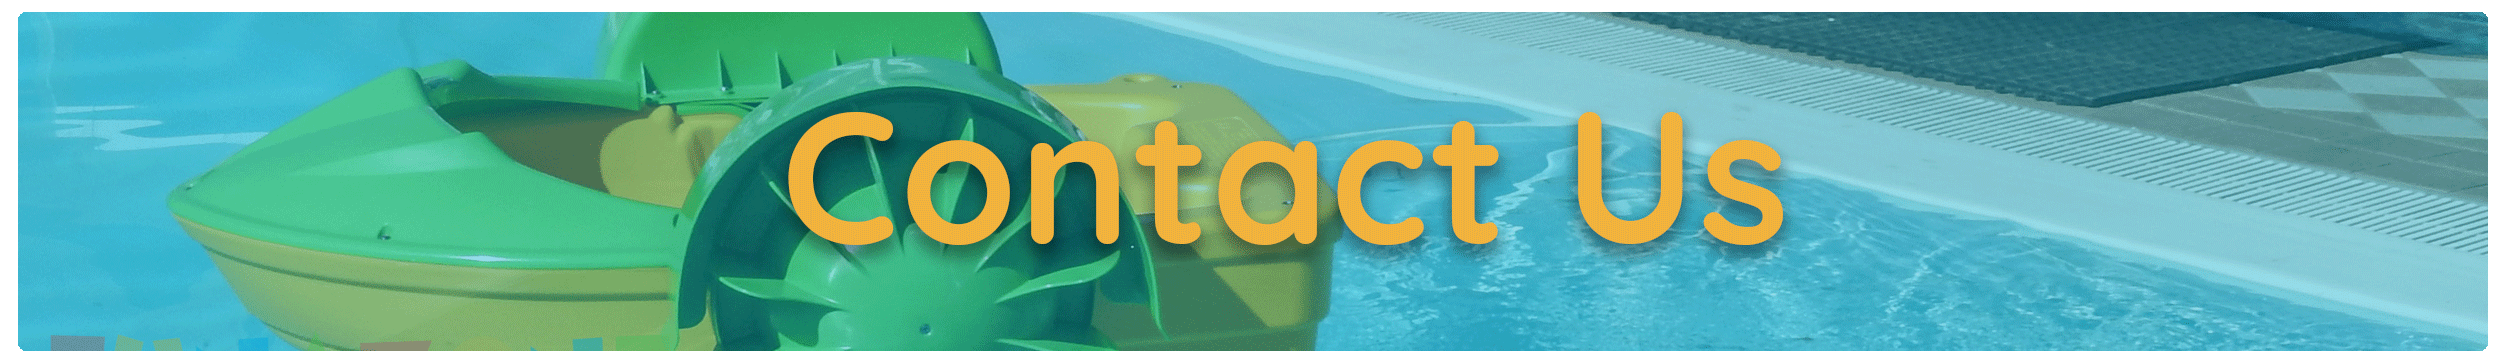 contact attractions rental service